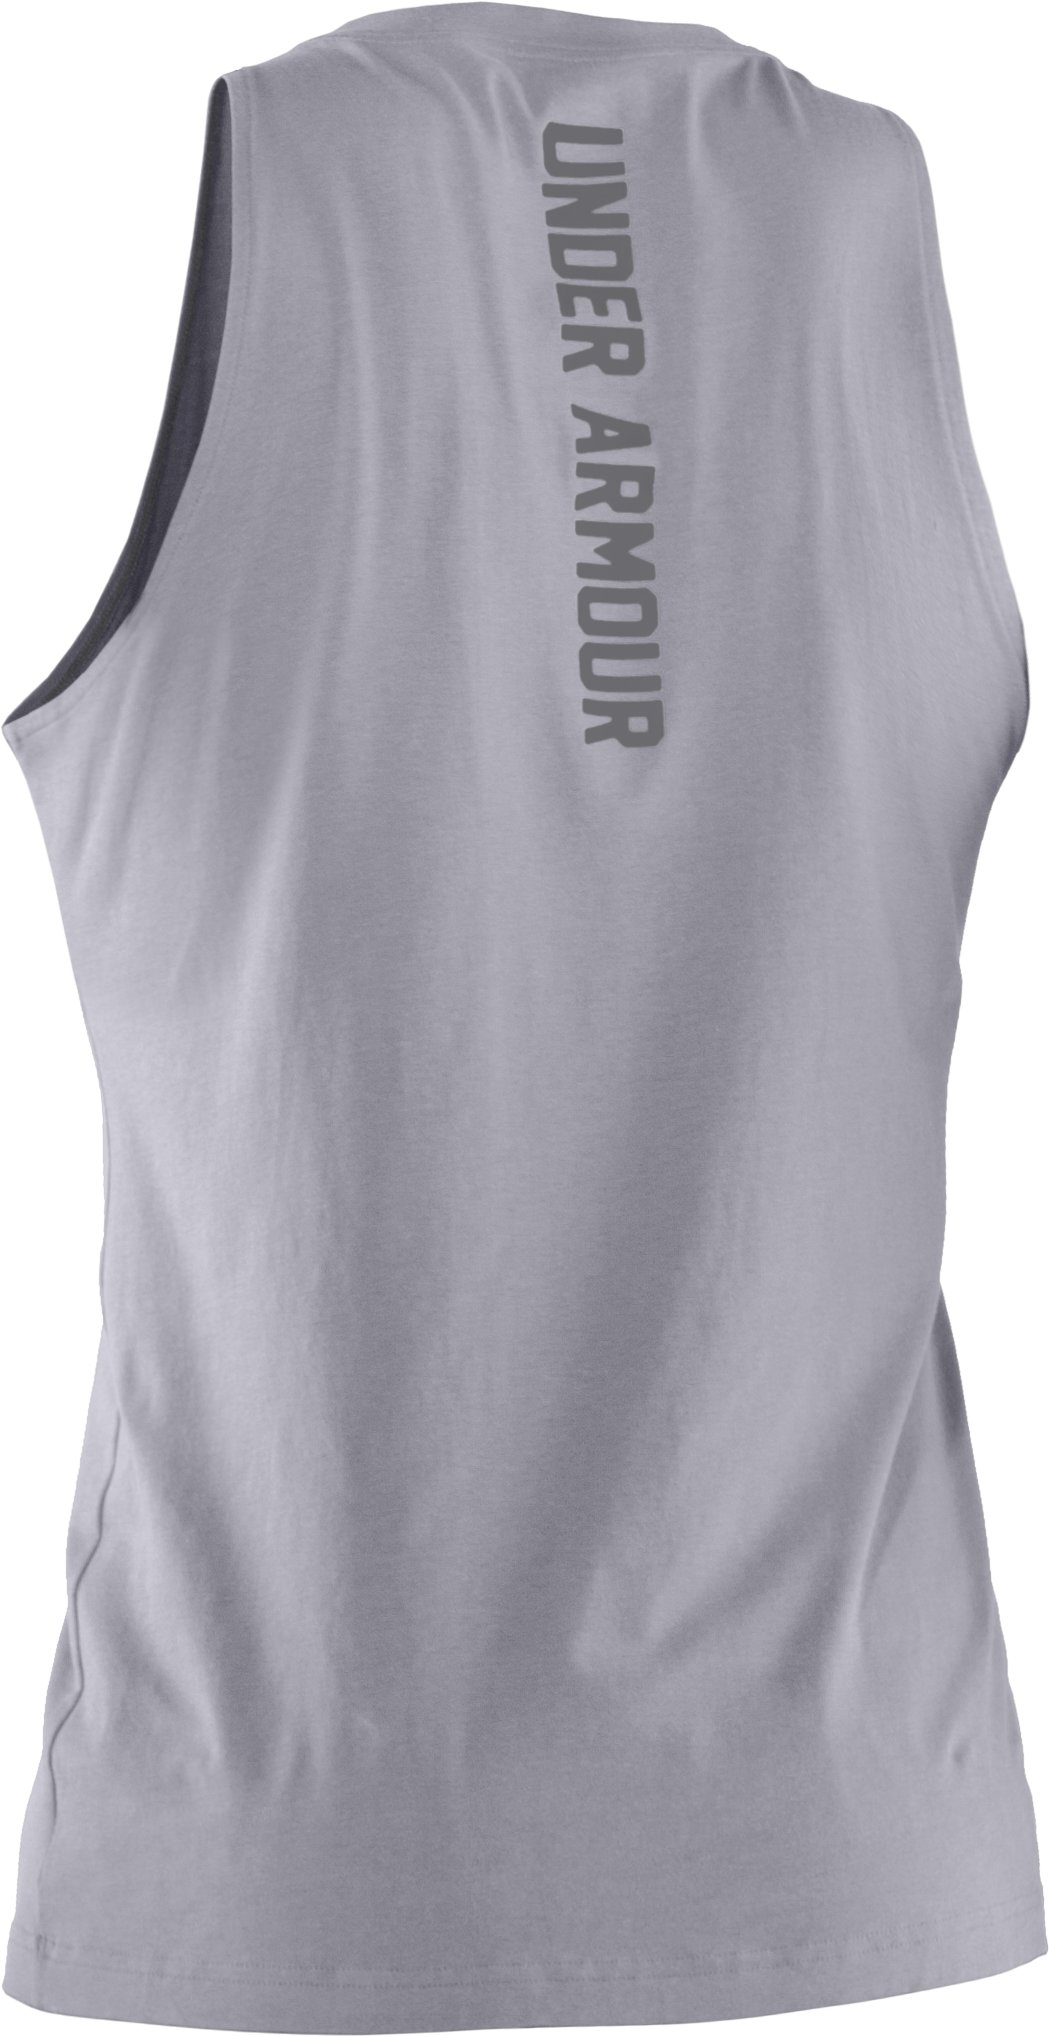 Men's Charged Cotton® Tank, Aluminum